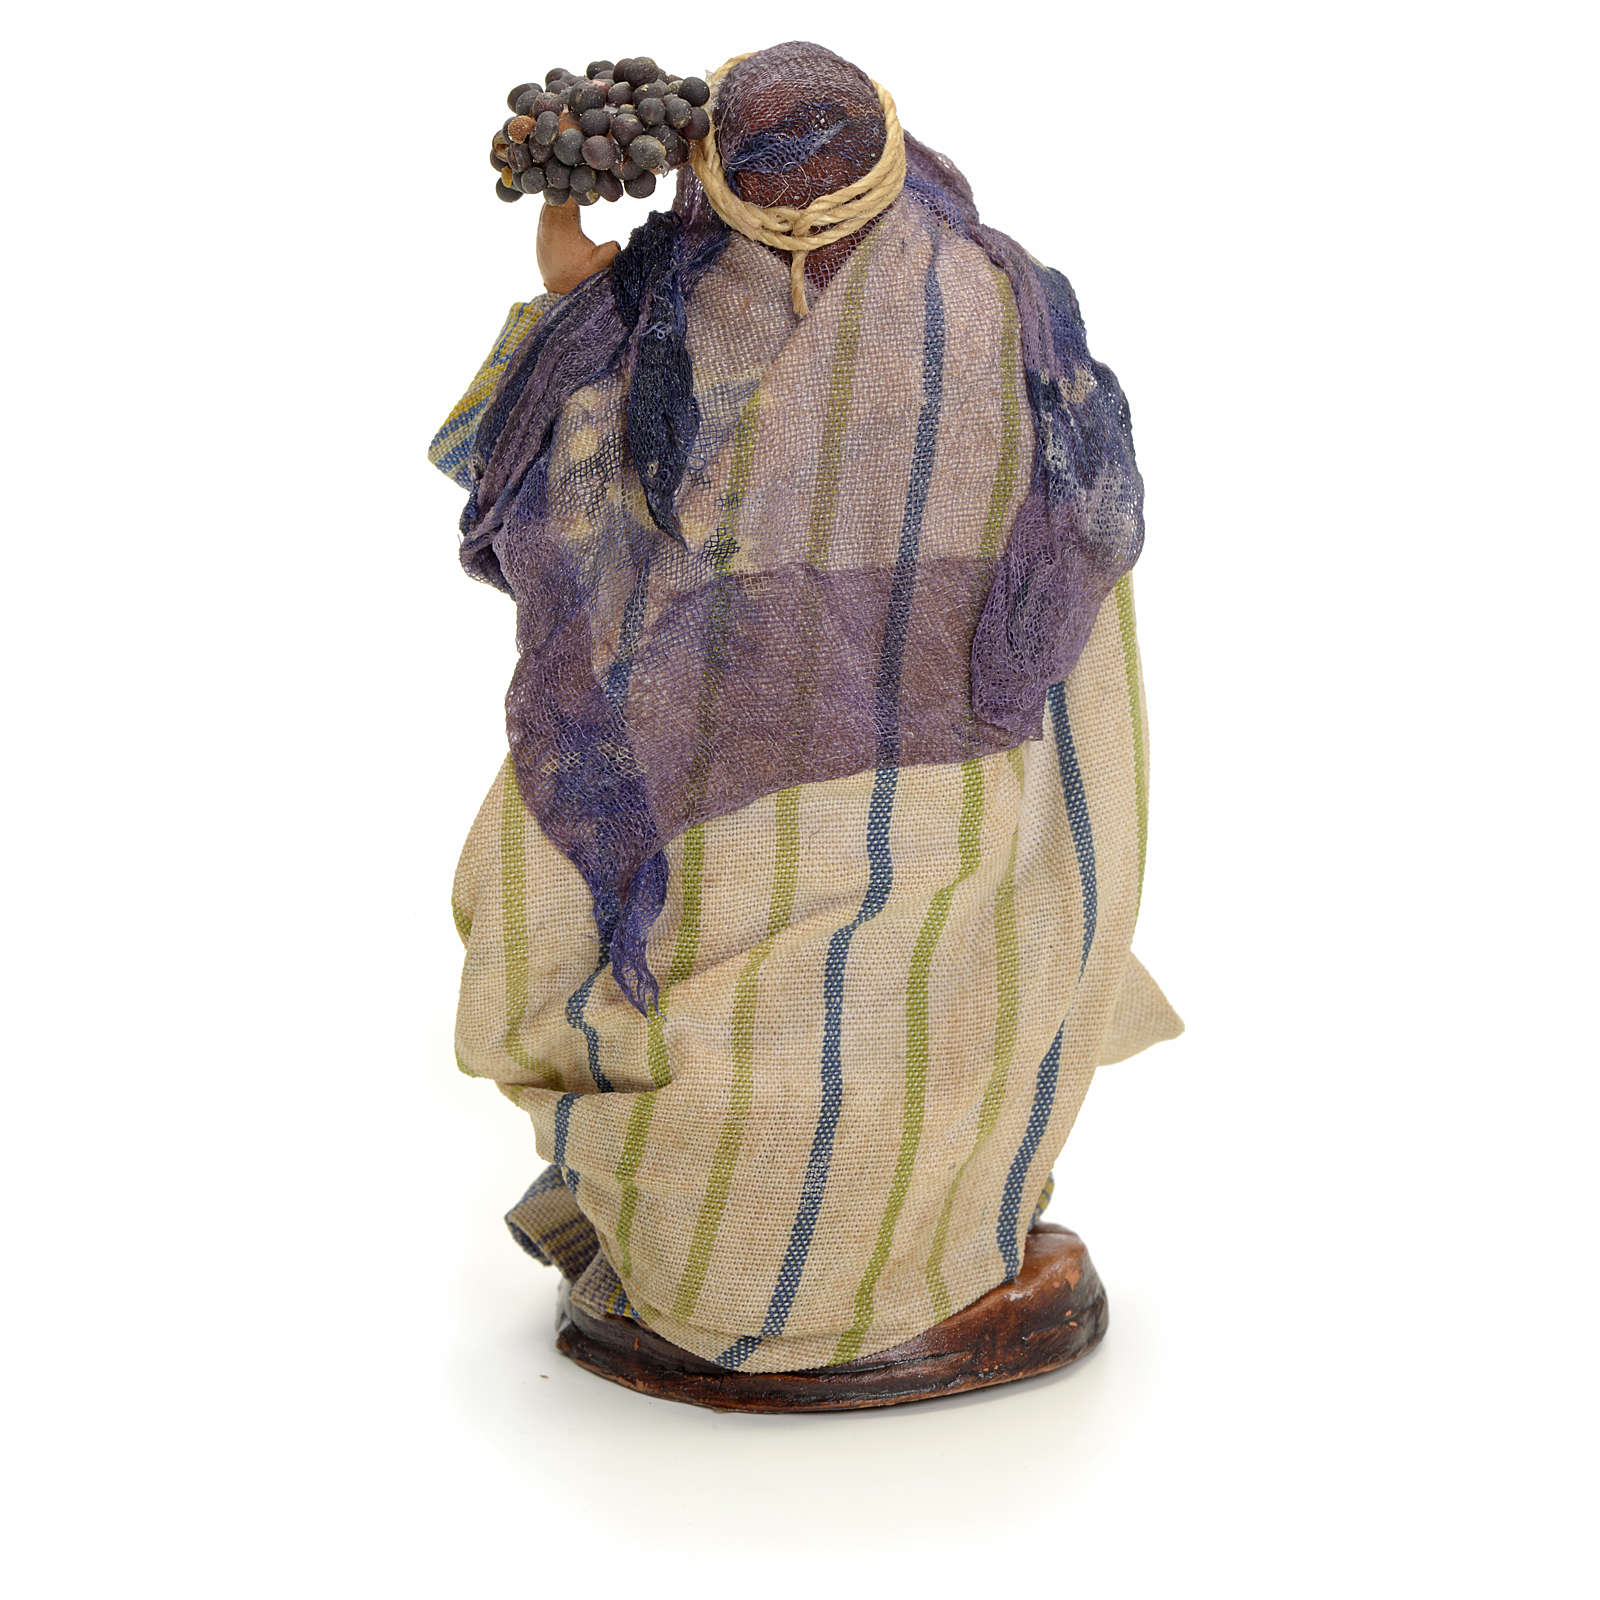 Neapolitan Nativity figurine, woman with bunches of grapes, 8 cm 4